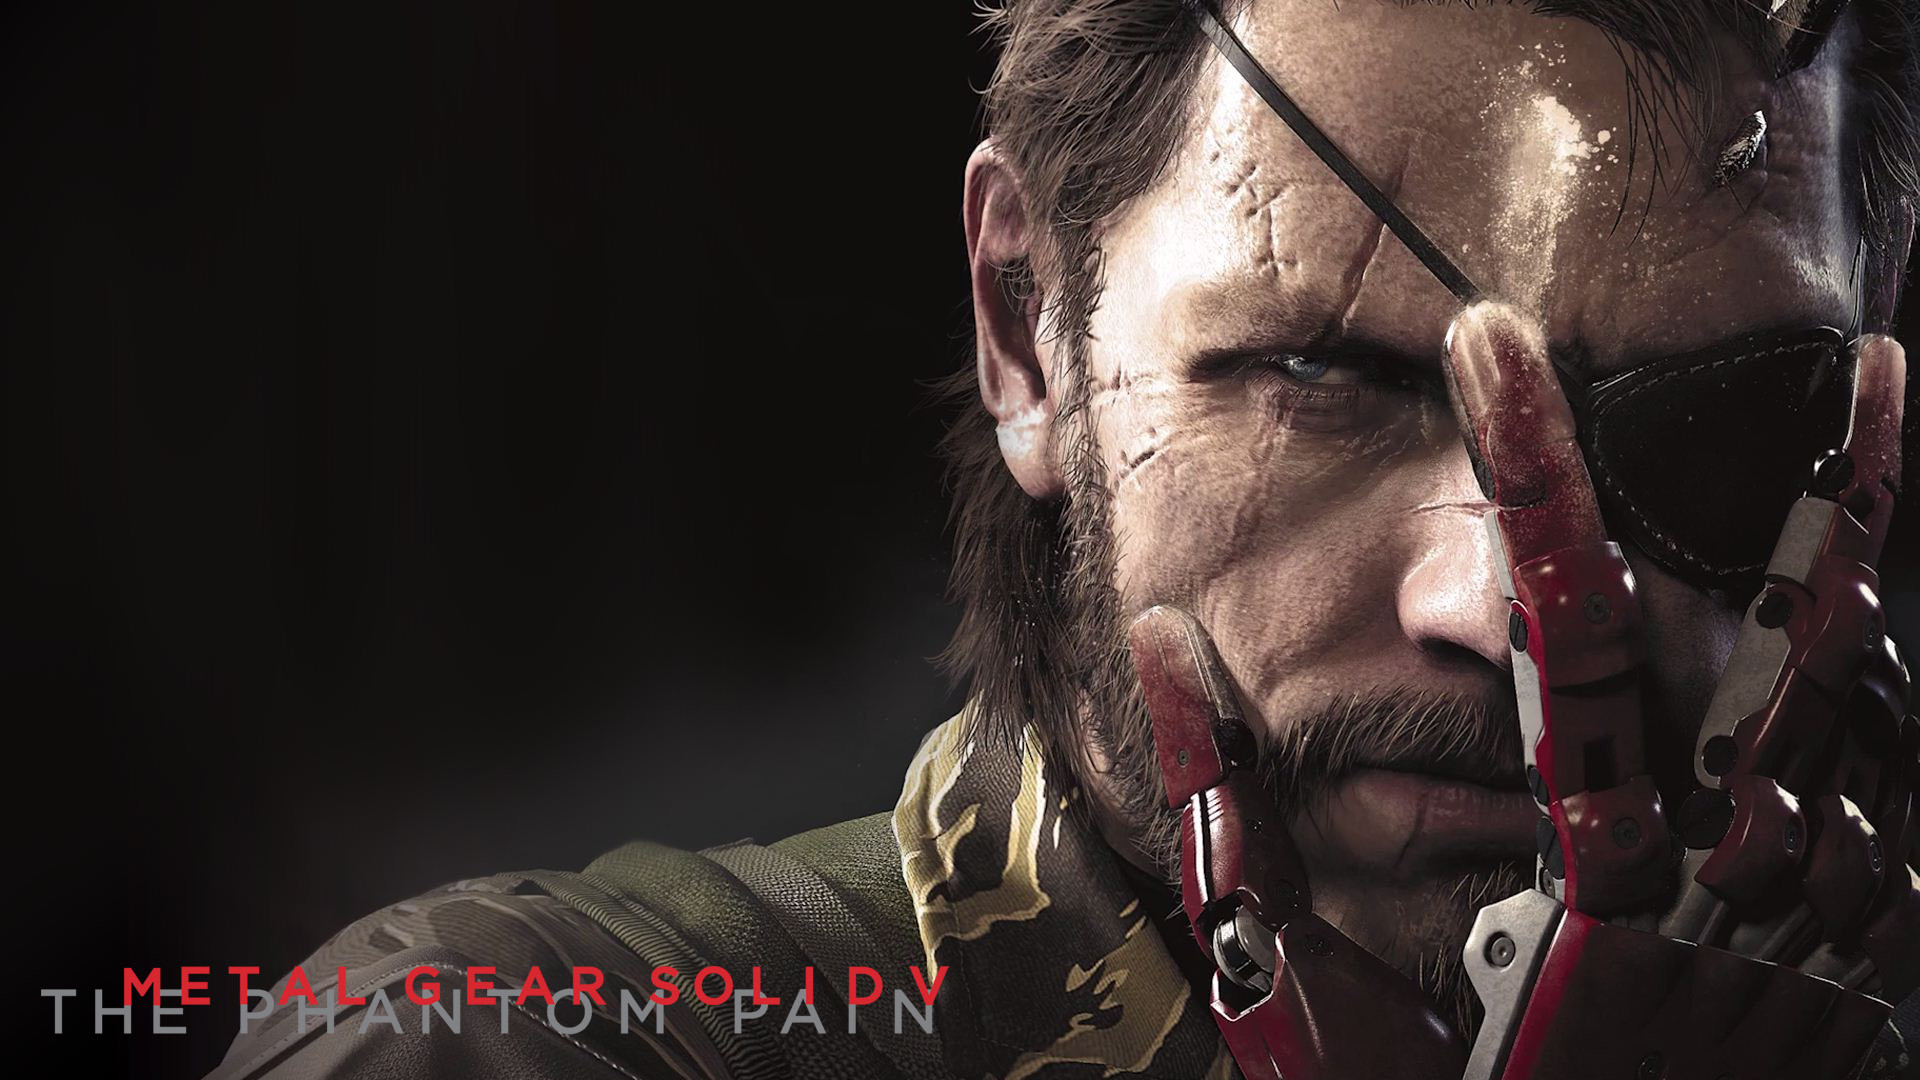 Metal Gear Solid Iphone Wallpaper Mgs5 Iphone Wallpaper 75 Images